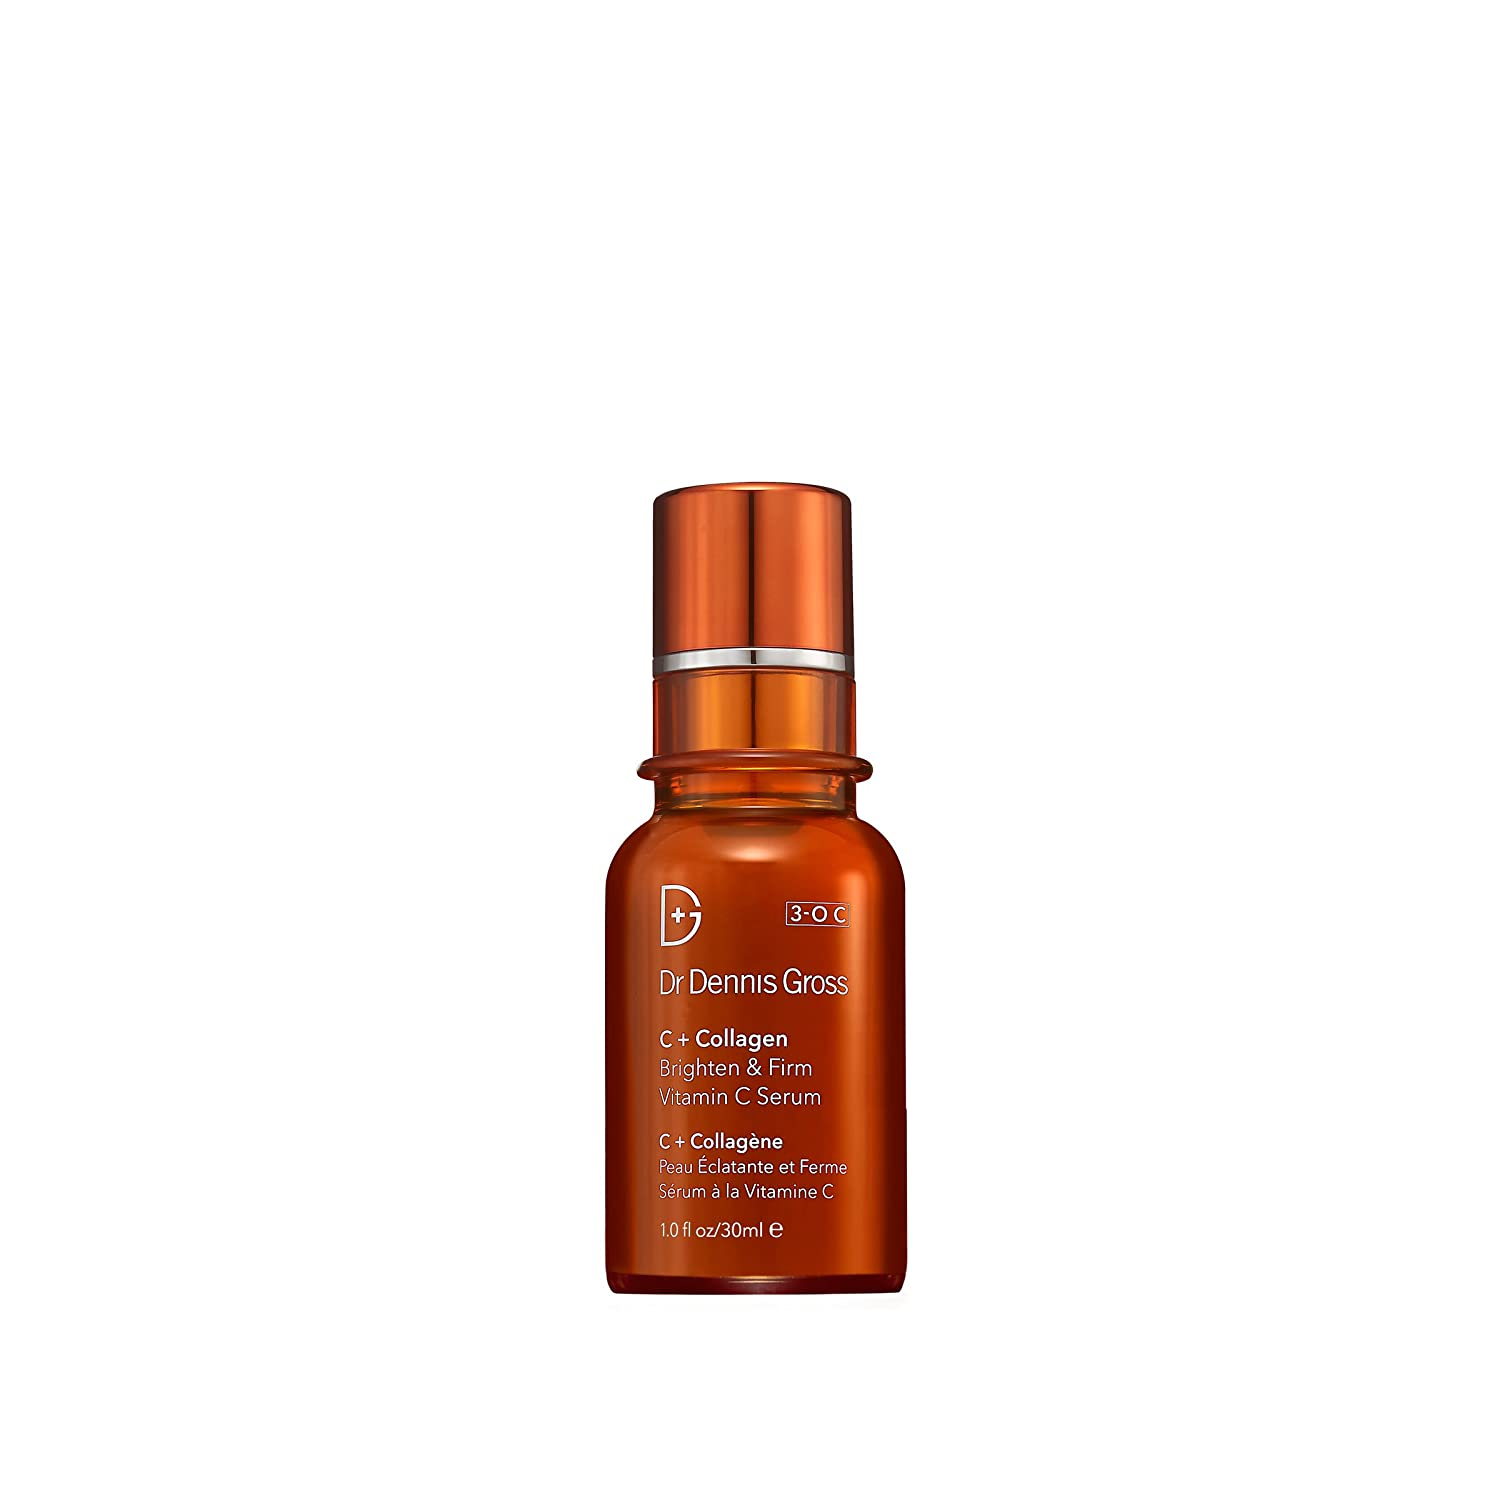 Dr. Dennis Gross C + Collagen Brighten & Firm Vitamin C Serum: for Dull Complexion, Wrinkles, Uneven Tone and Texture, 1.0 fl oz